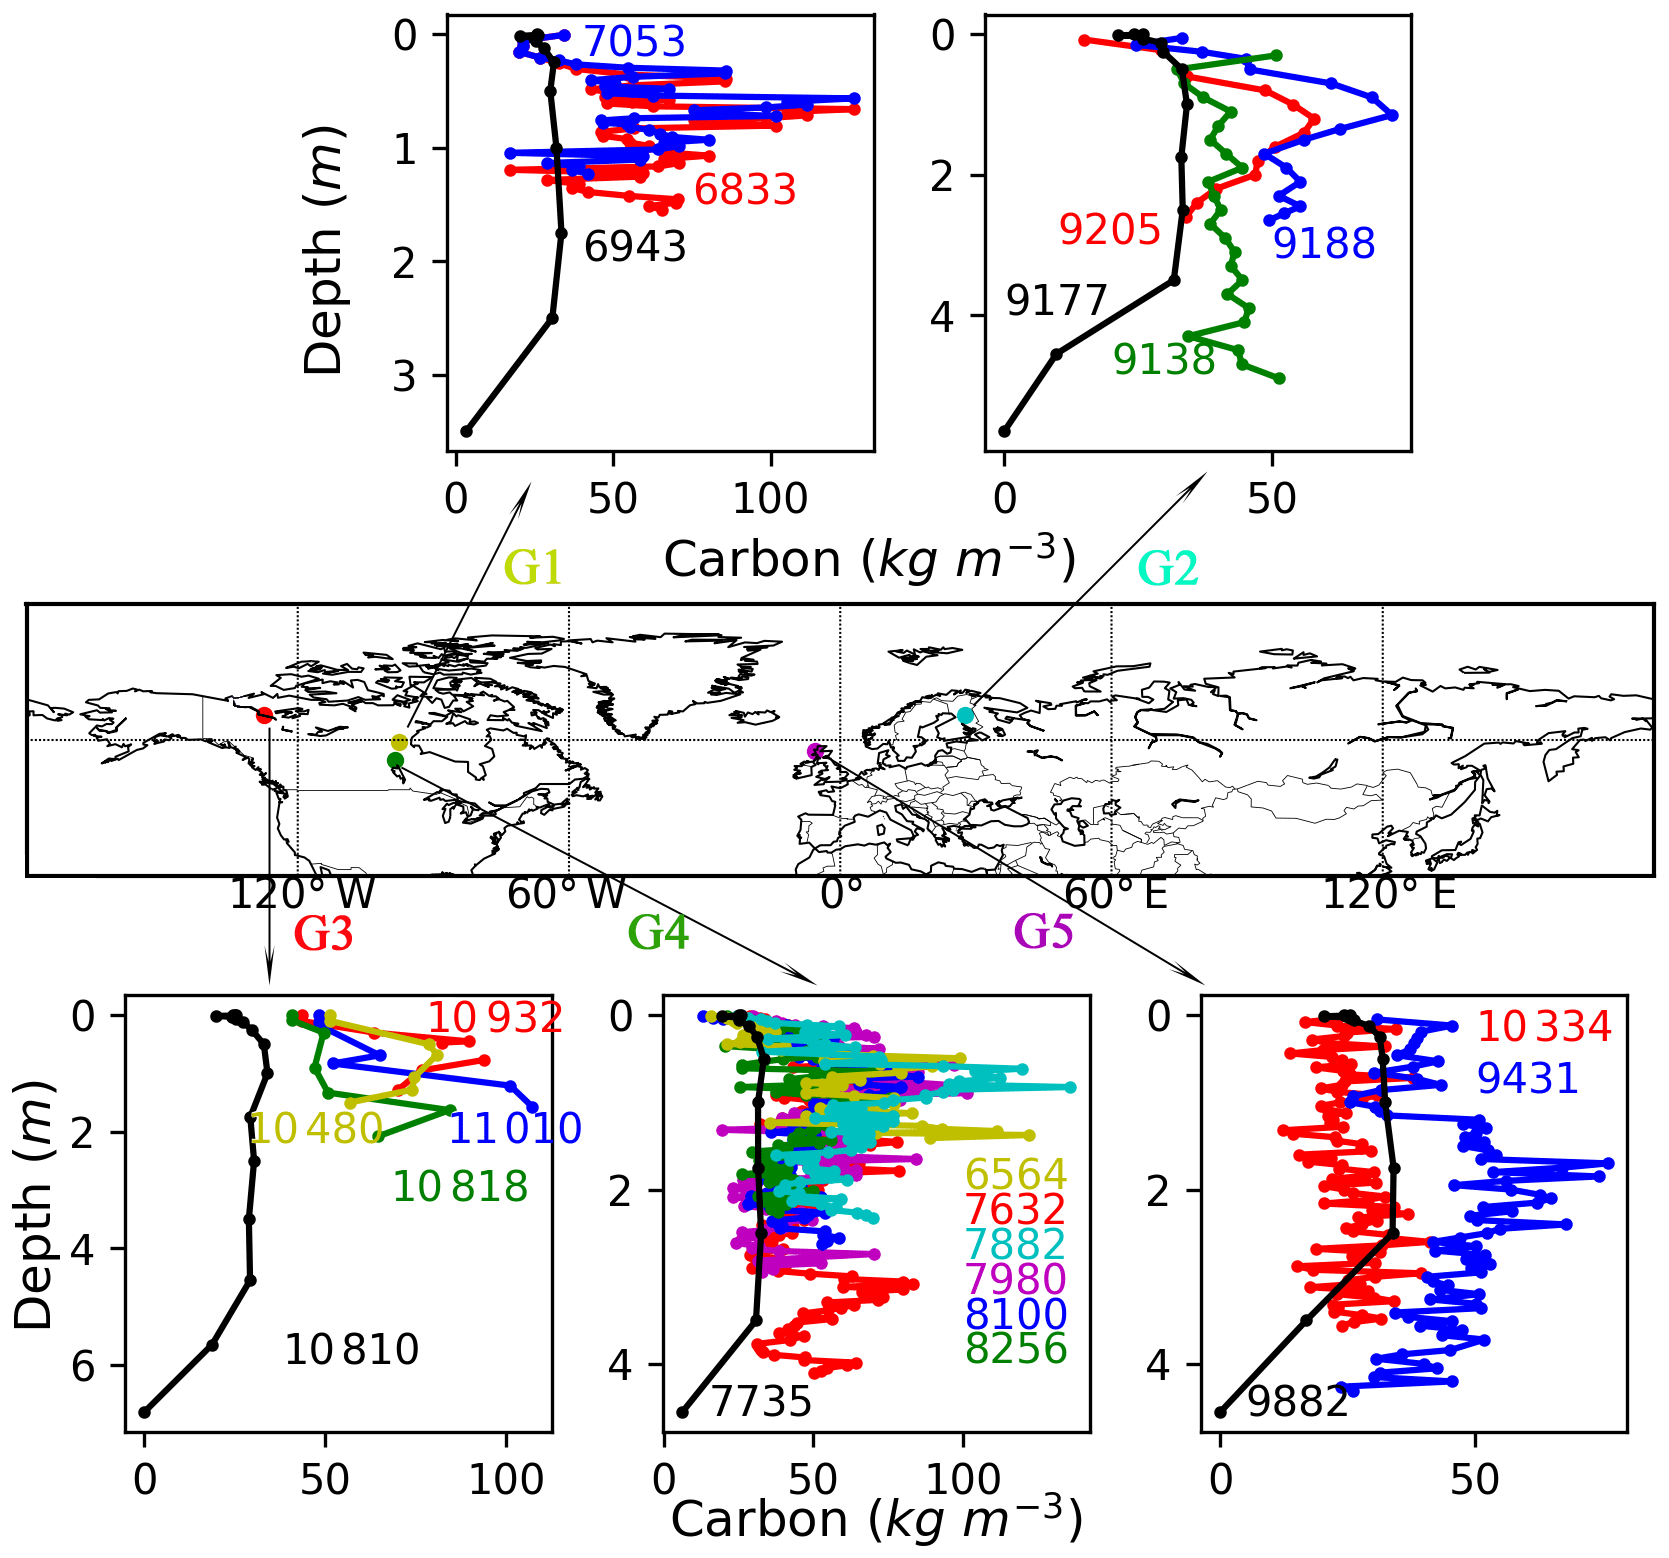 GMD - Modelling northern peatland area and carbon dynamics since the